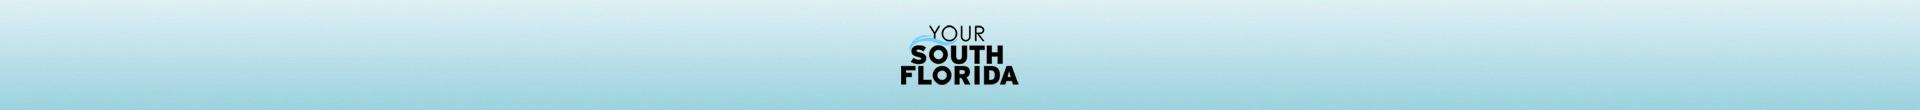 Your South Florida Banner